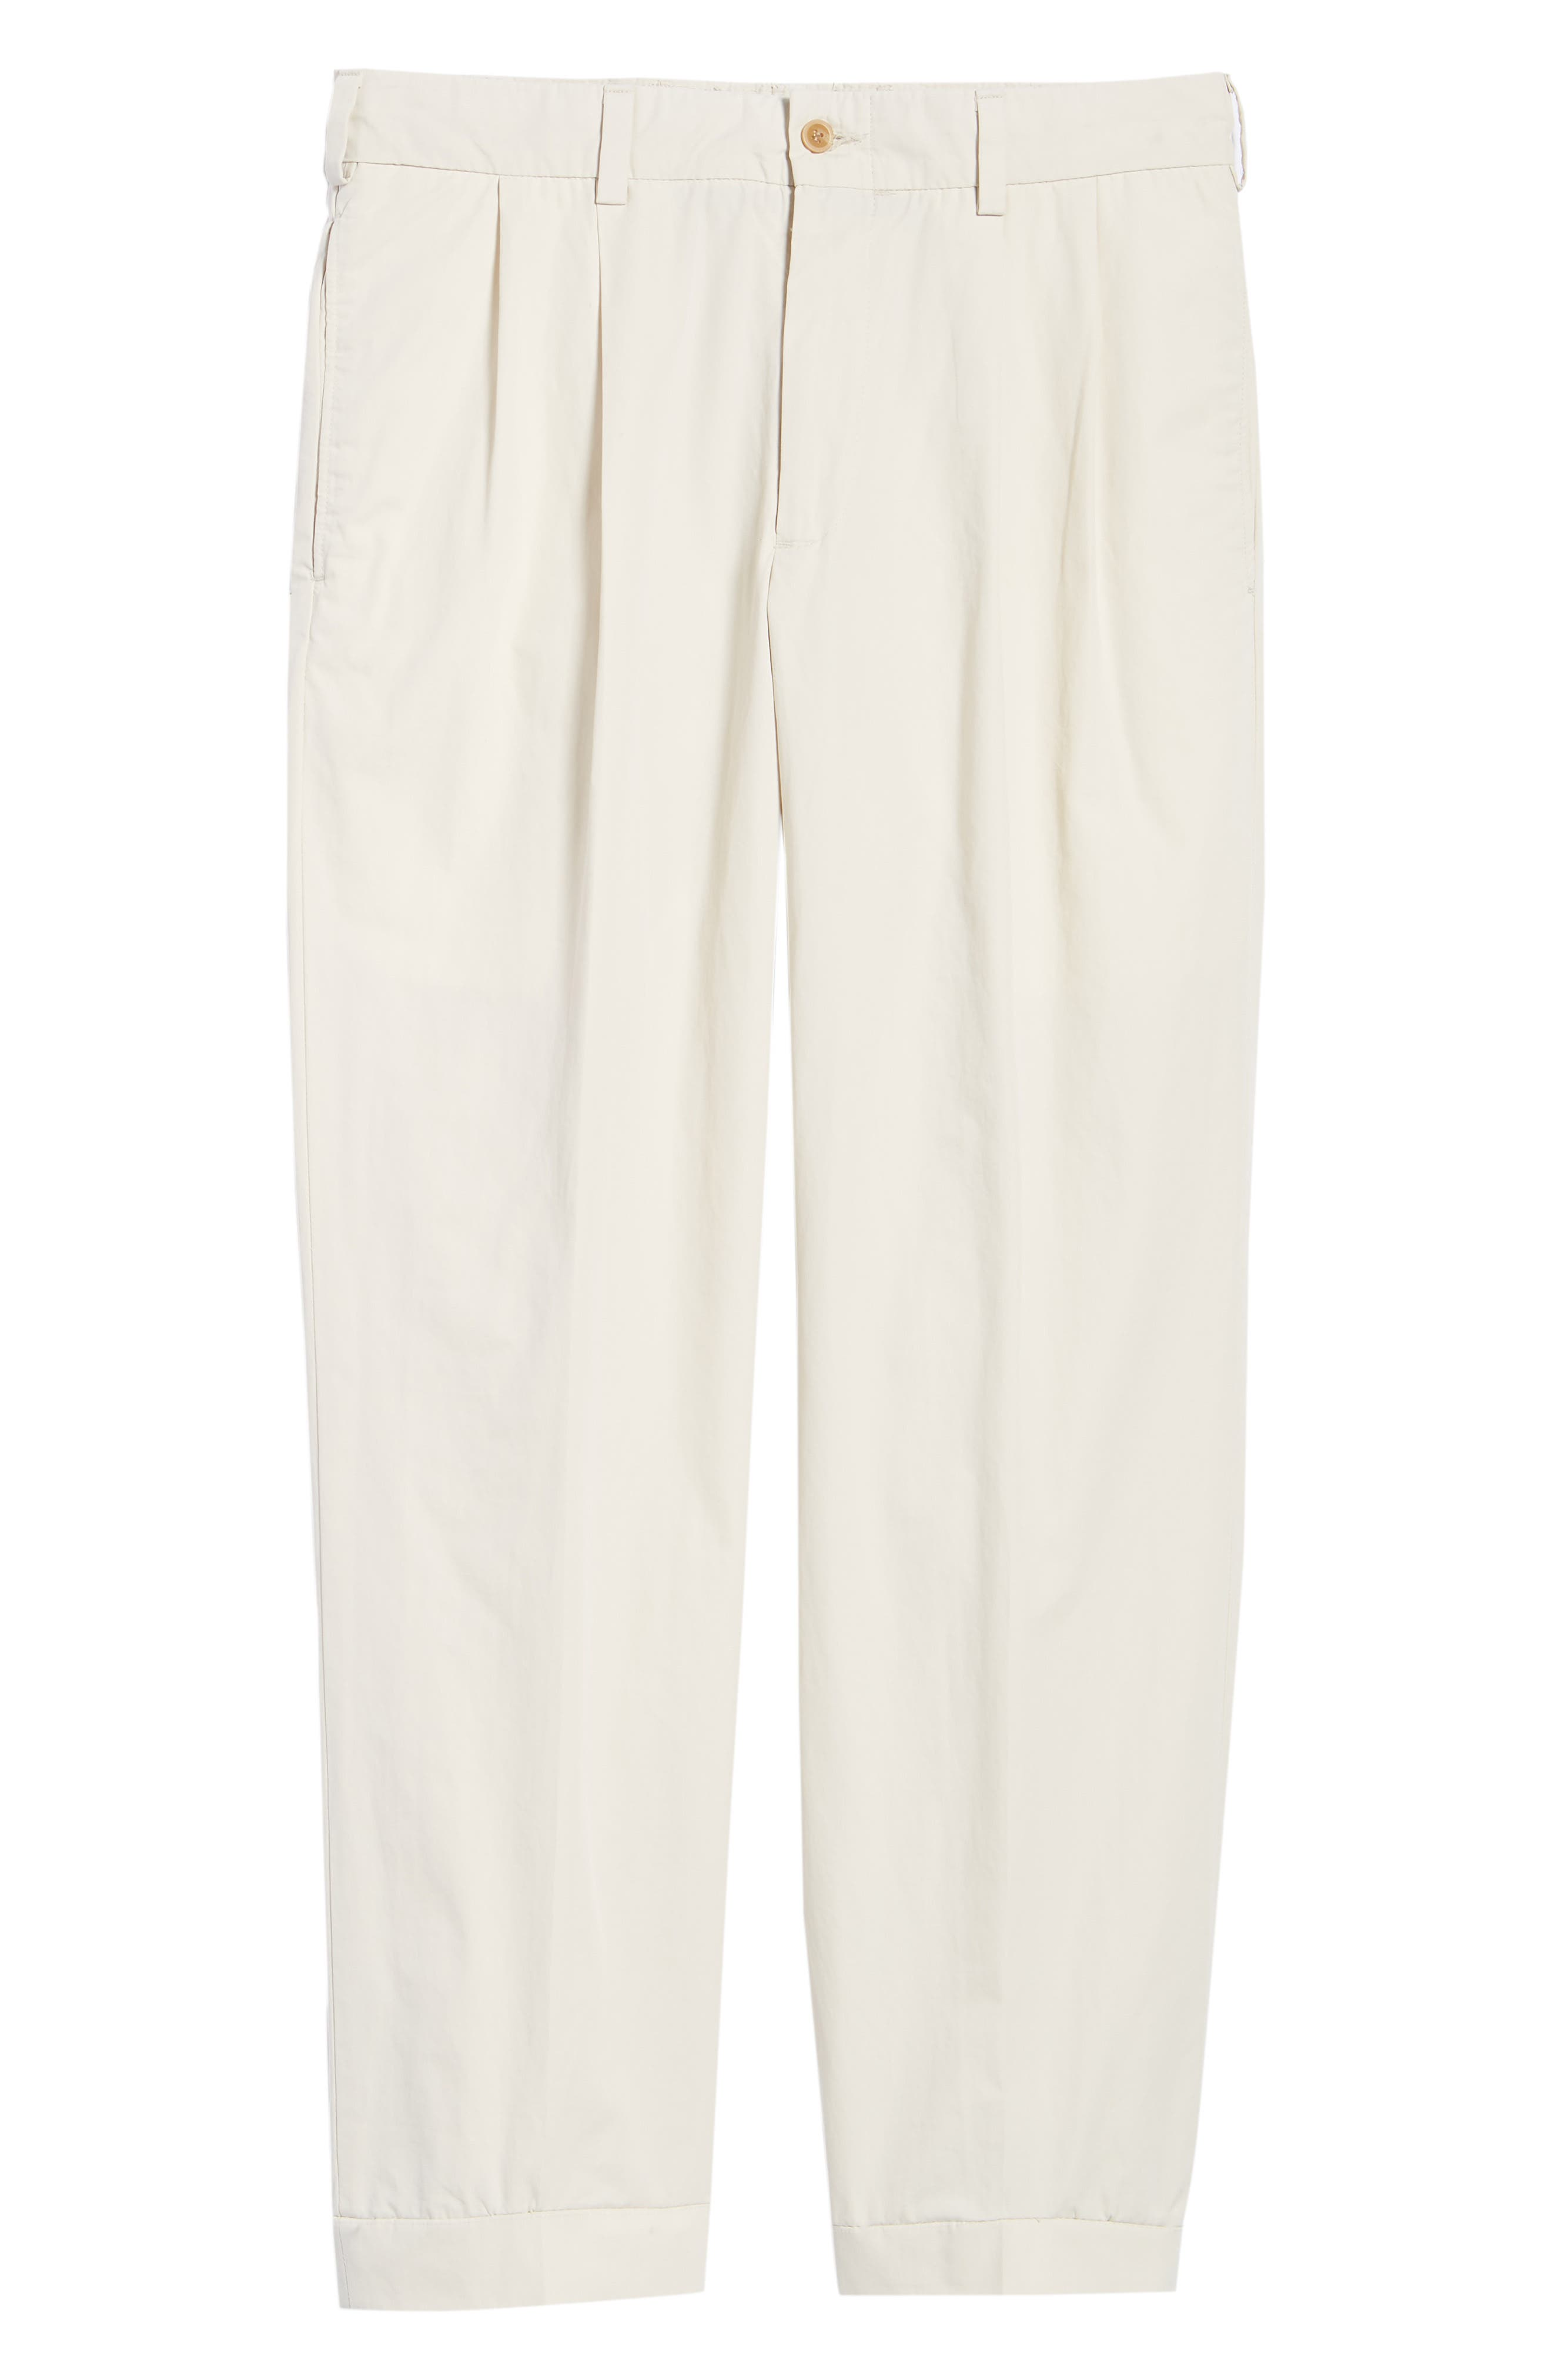 M2 Classic Fit Pleated Tropical Cotton Poplin Pants,                             Alternate thumbnail 6, color,                             Sand